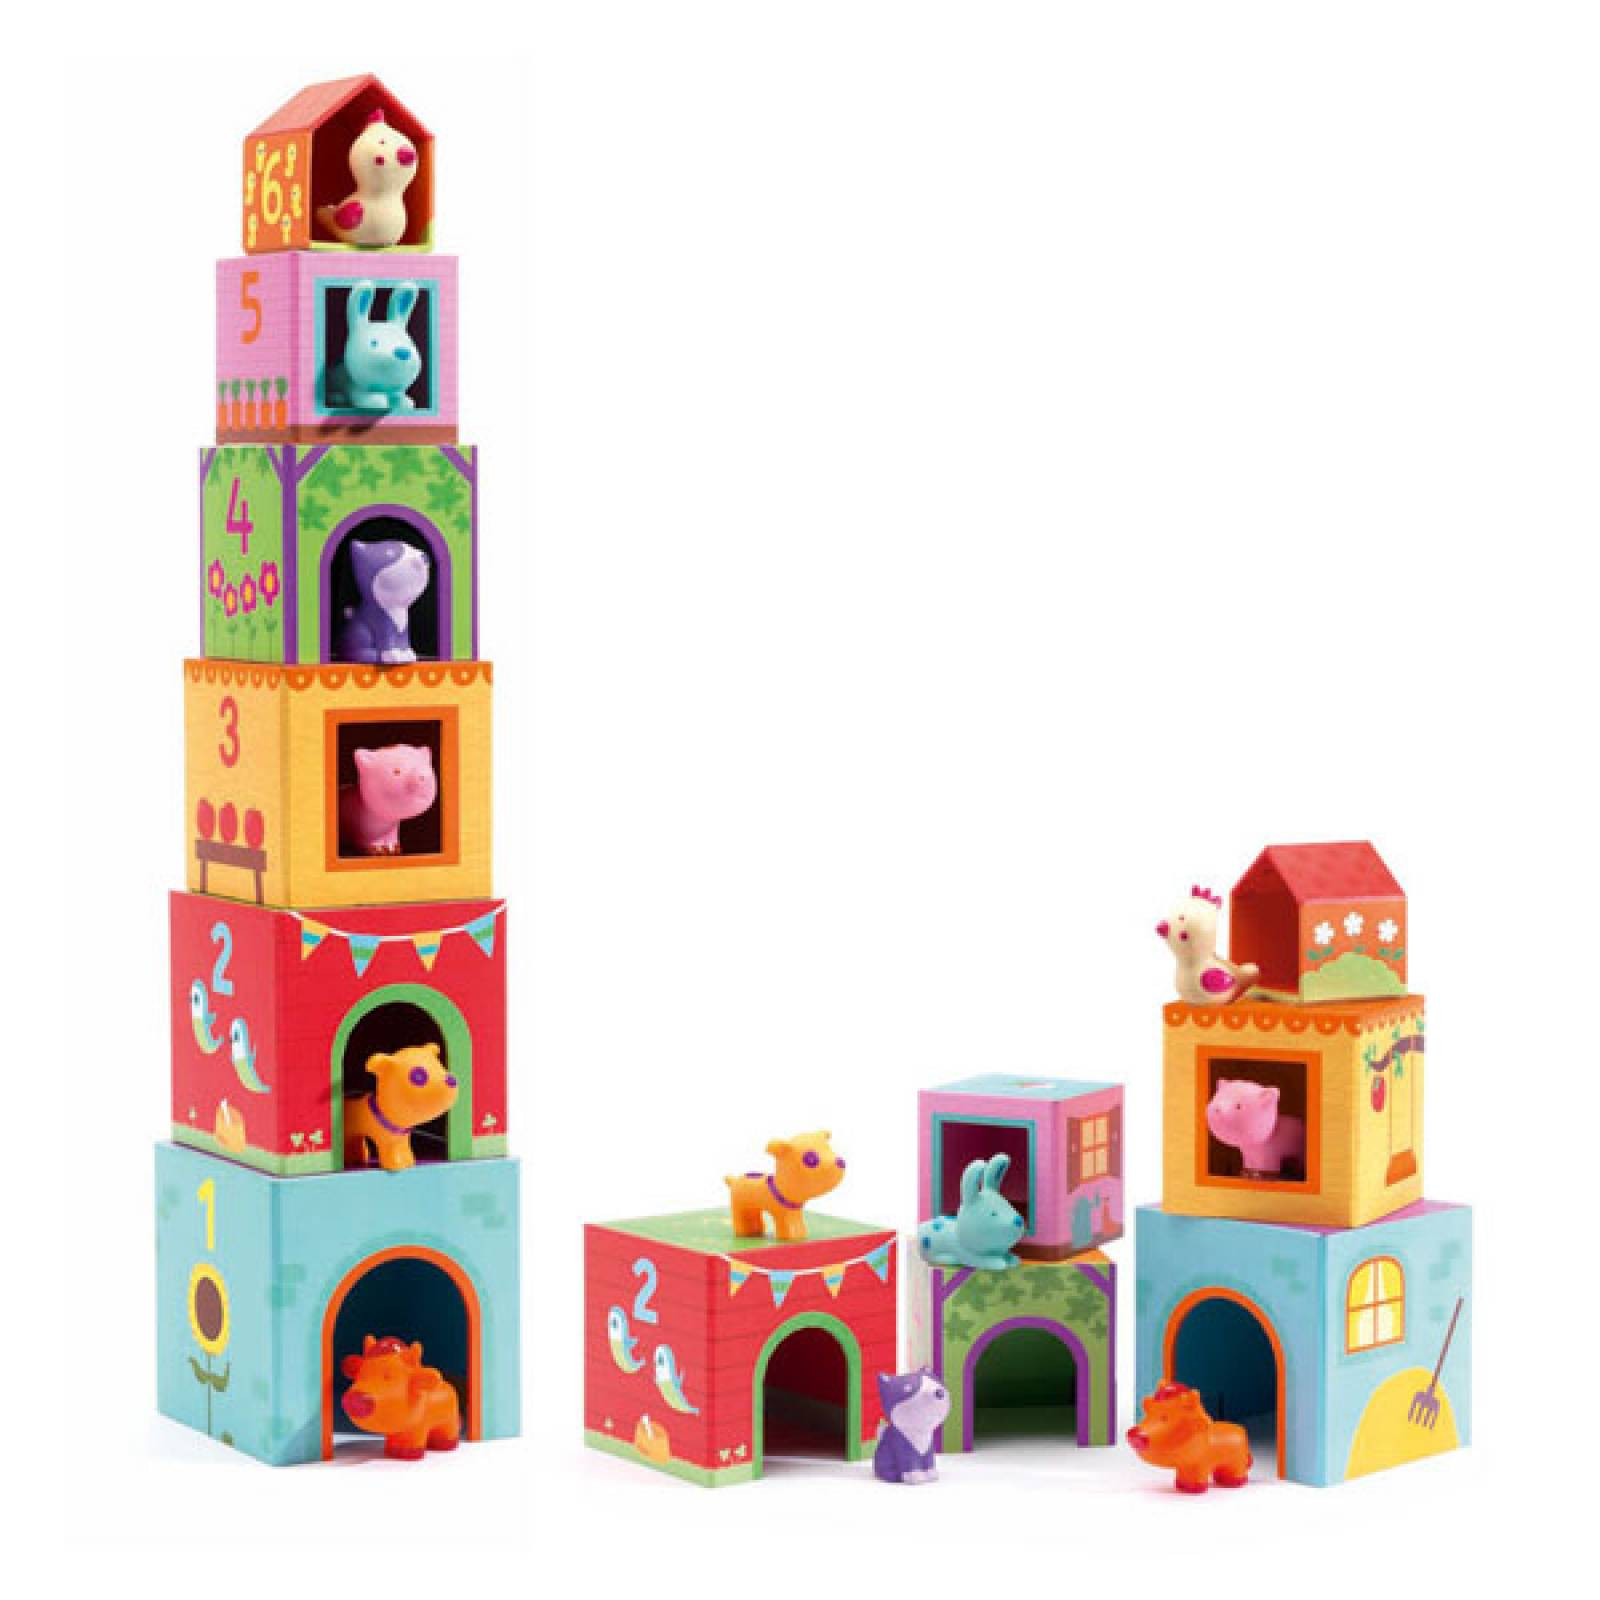 Topanifarm Cubes and Animals Stacking Game Djeco 18m+